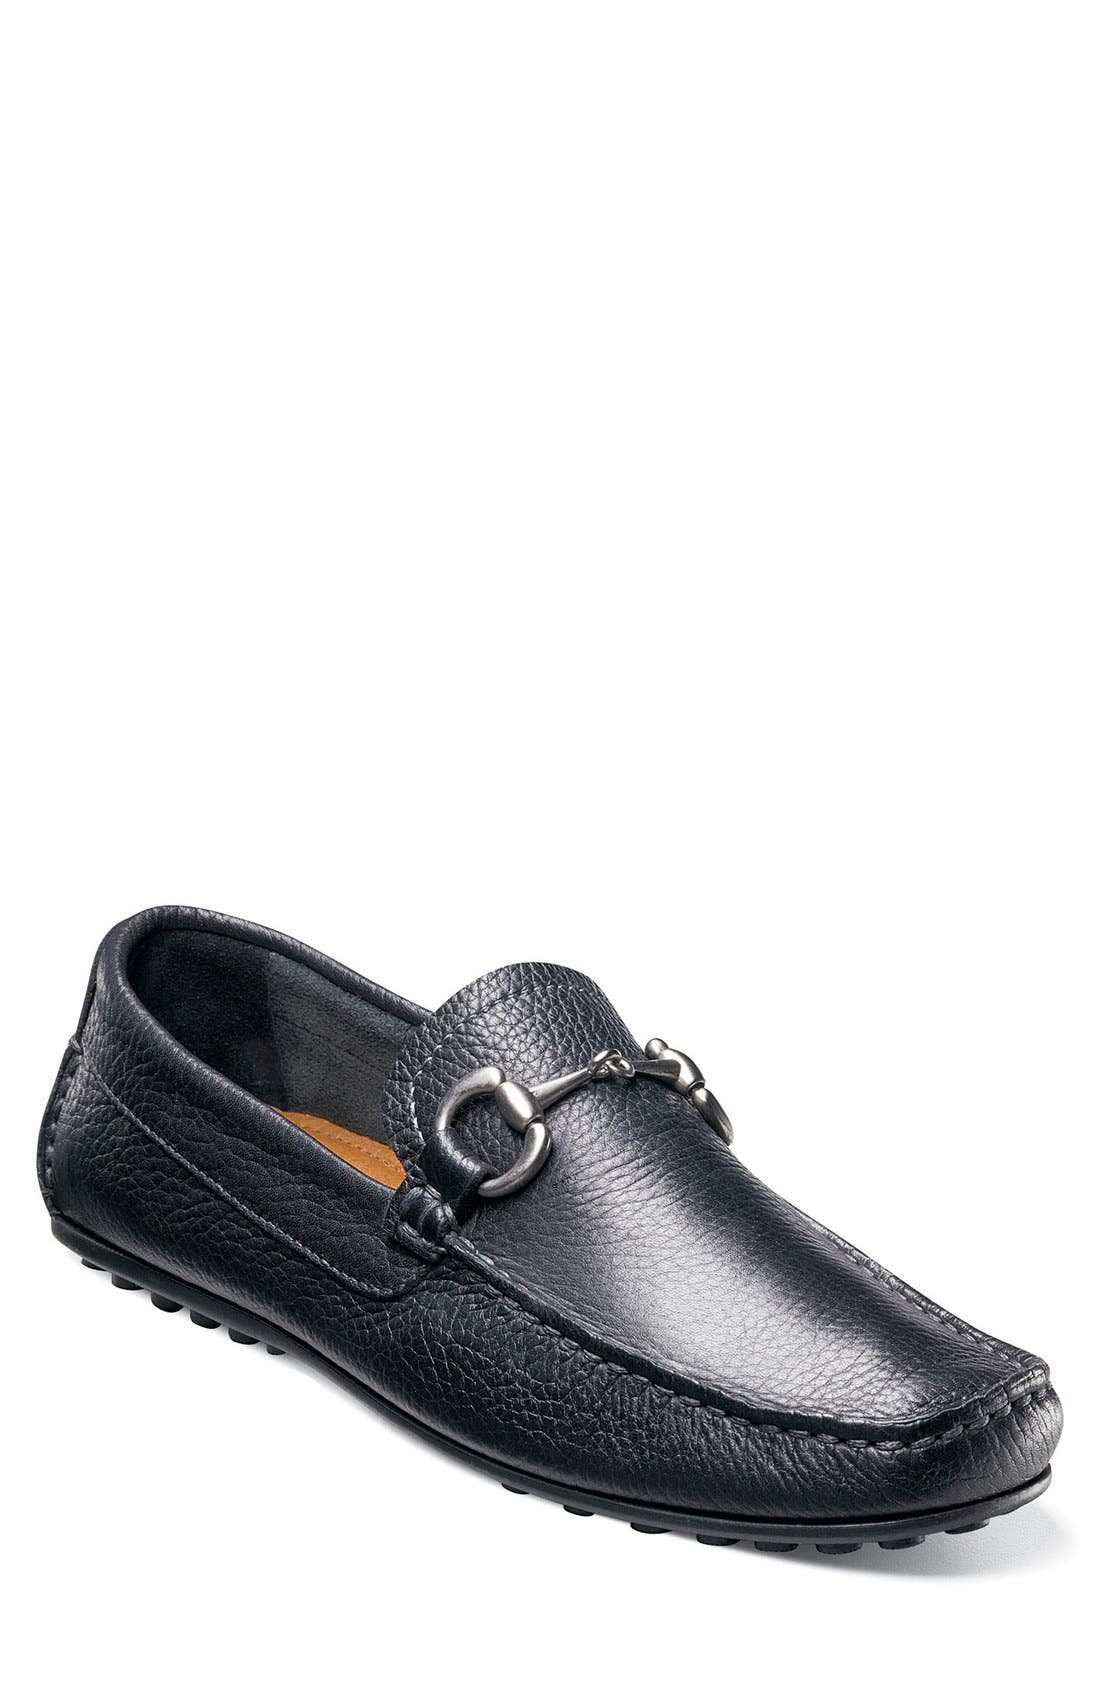 Florsheim 'Danforth' Driving Shoe (Men)